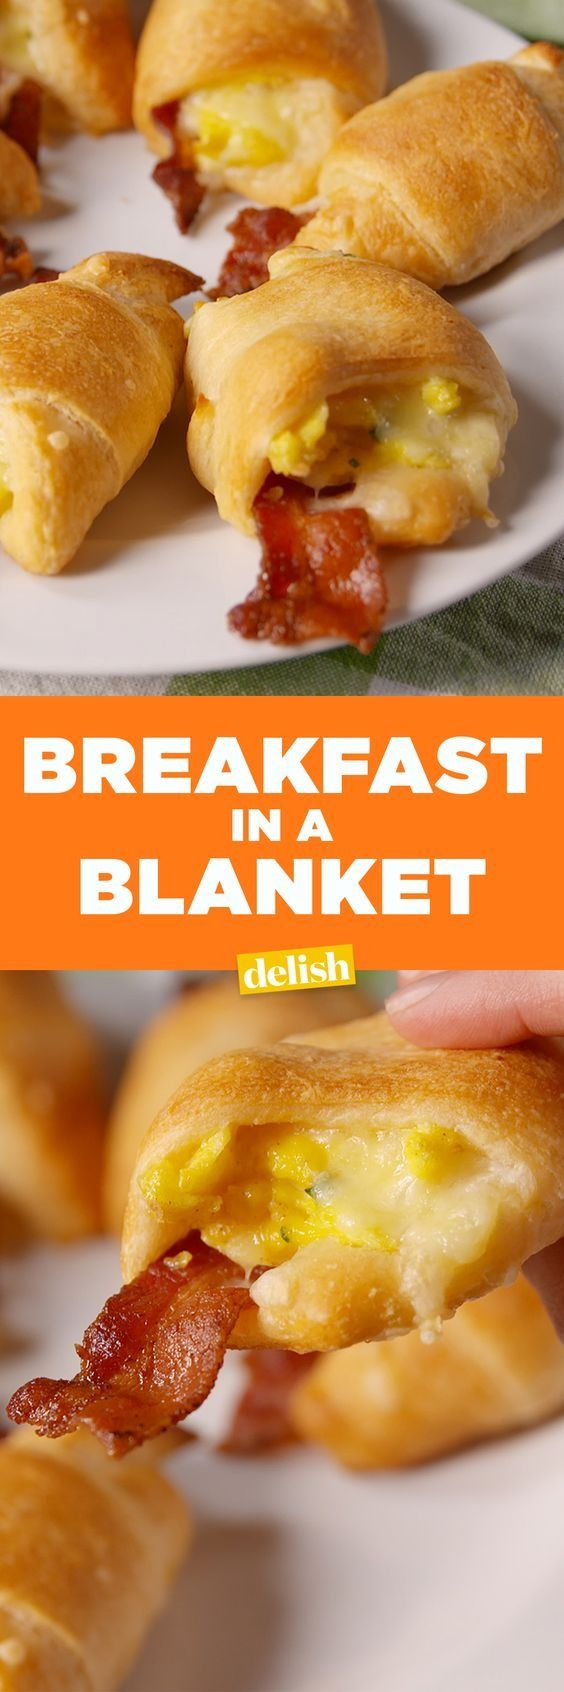 Move aside pigs in a blanket, you've been replaced! We can't wait to try out this delish breakfast recipe over the weekend. YUM!